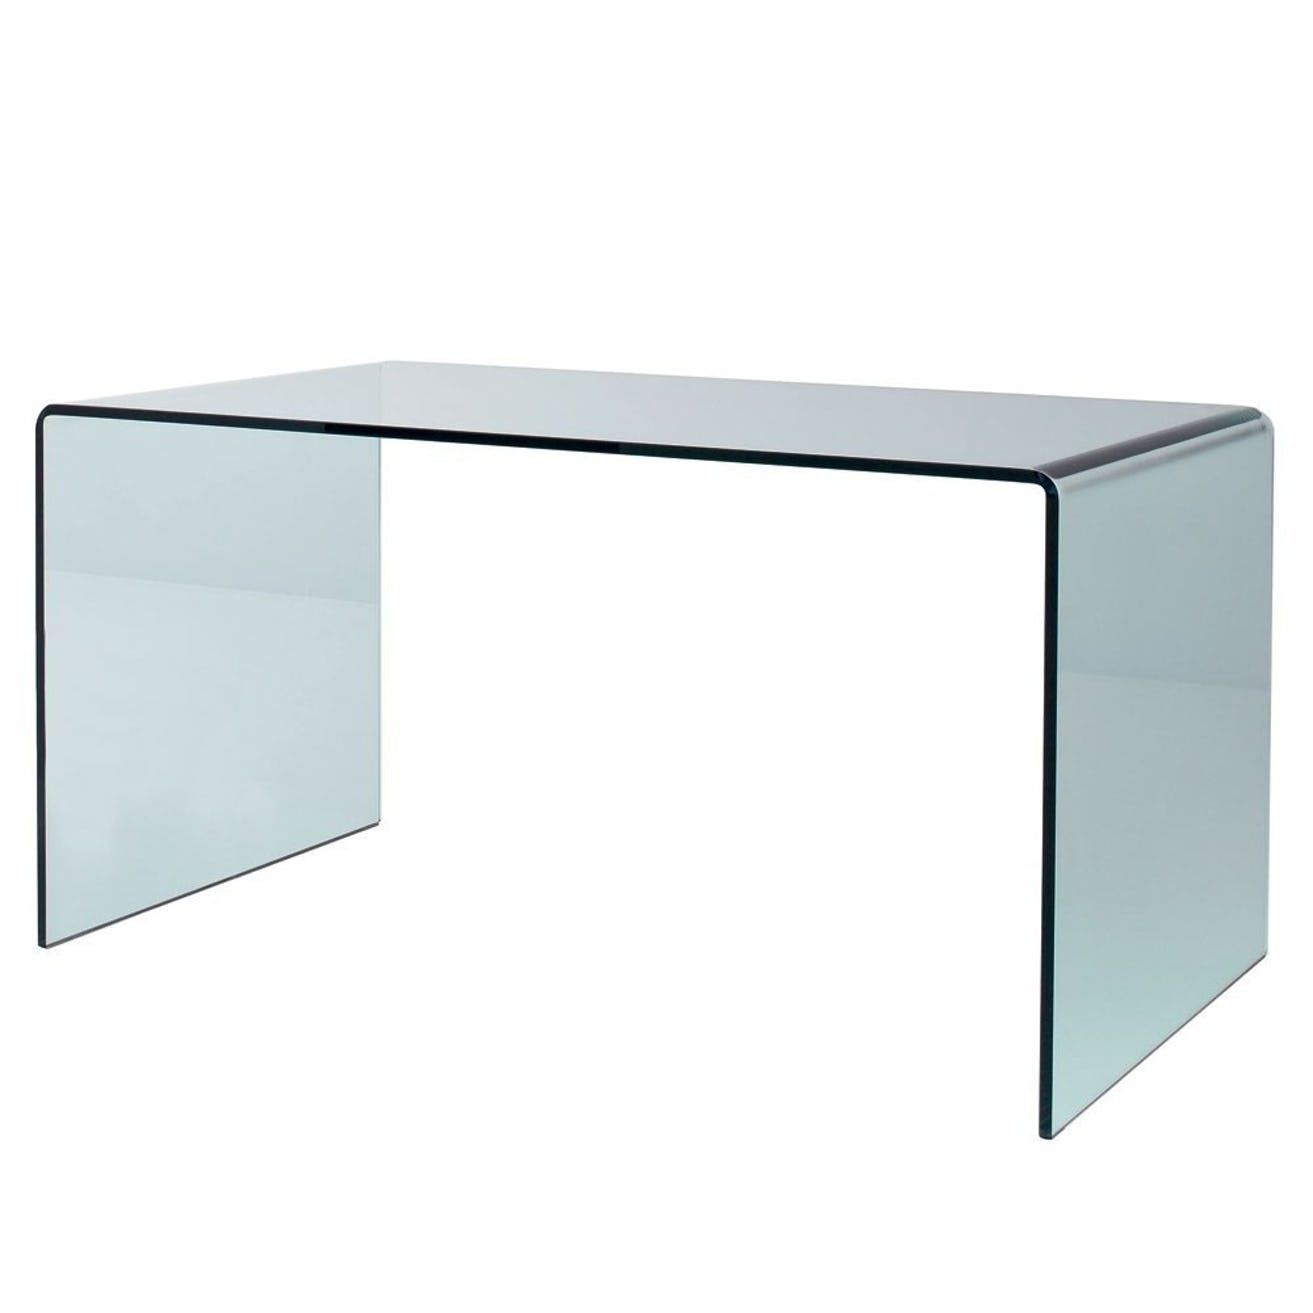 Order Desk By Sovet Now Available At Haute Living Contemporary Furniture Design Doors Interior Contemporary Furniture